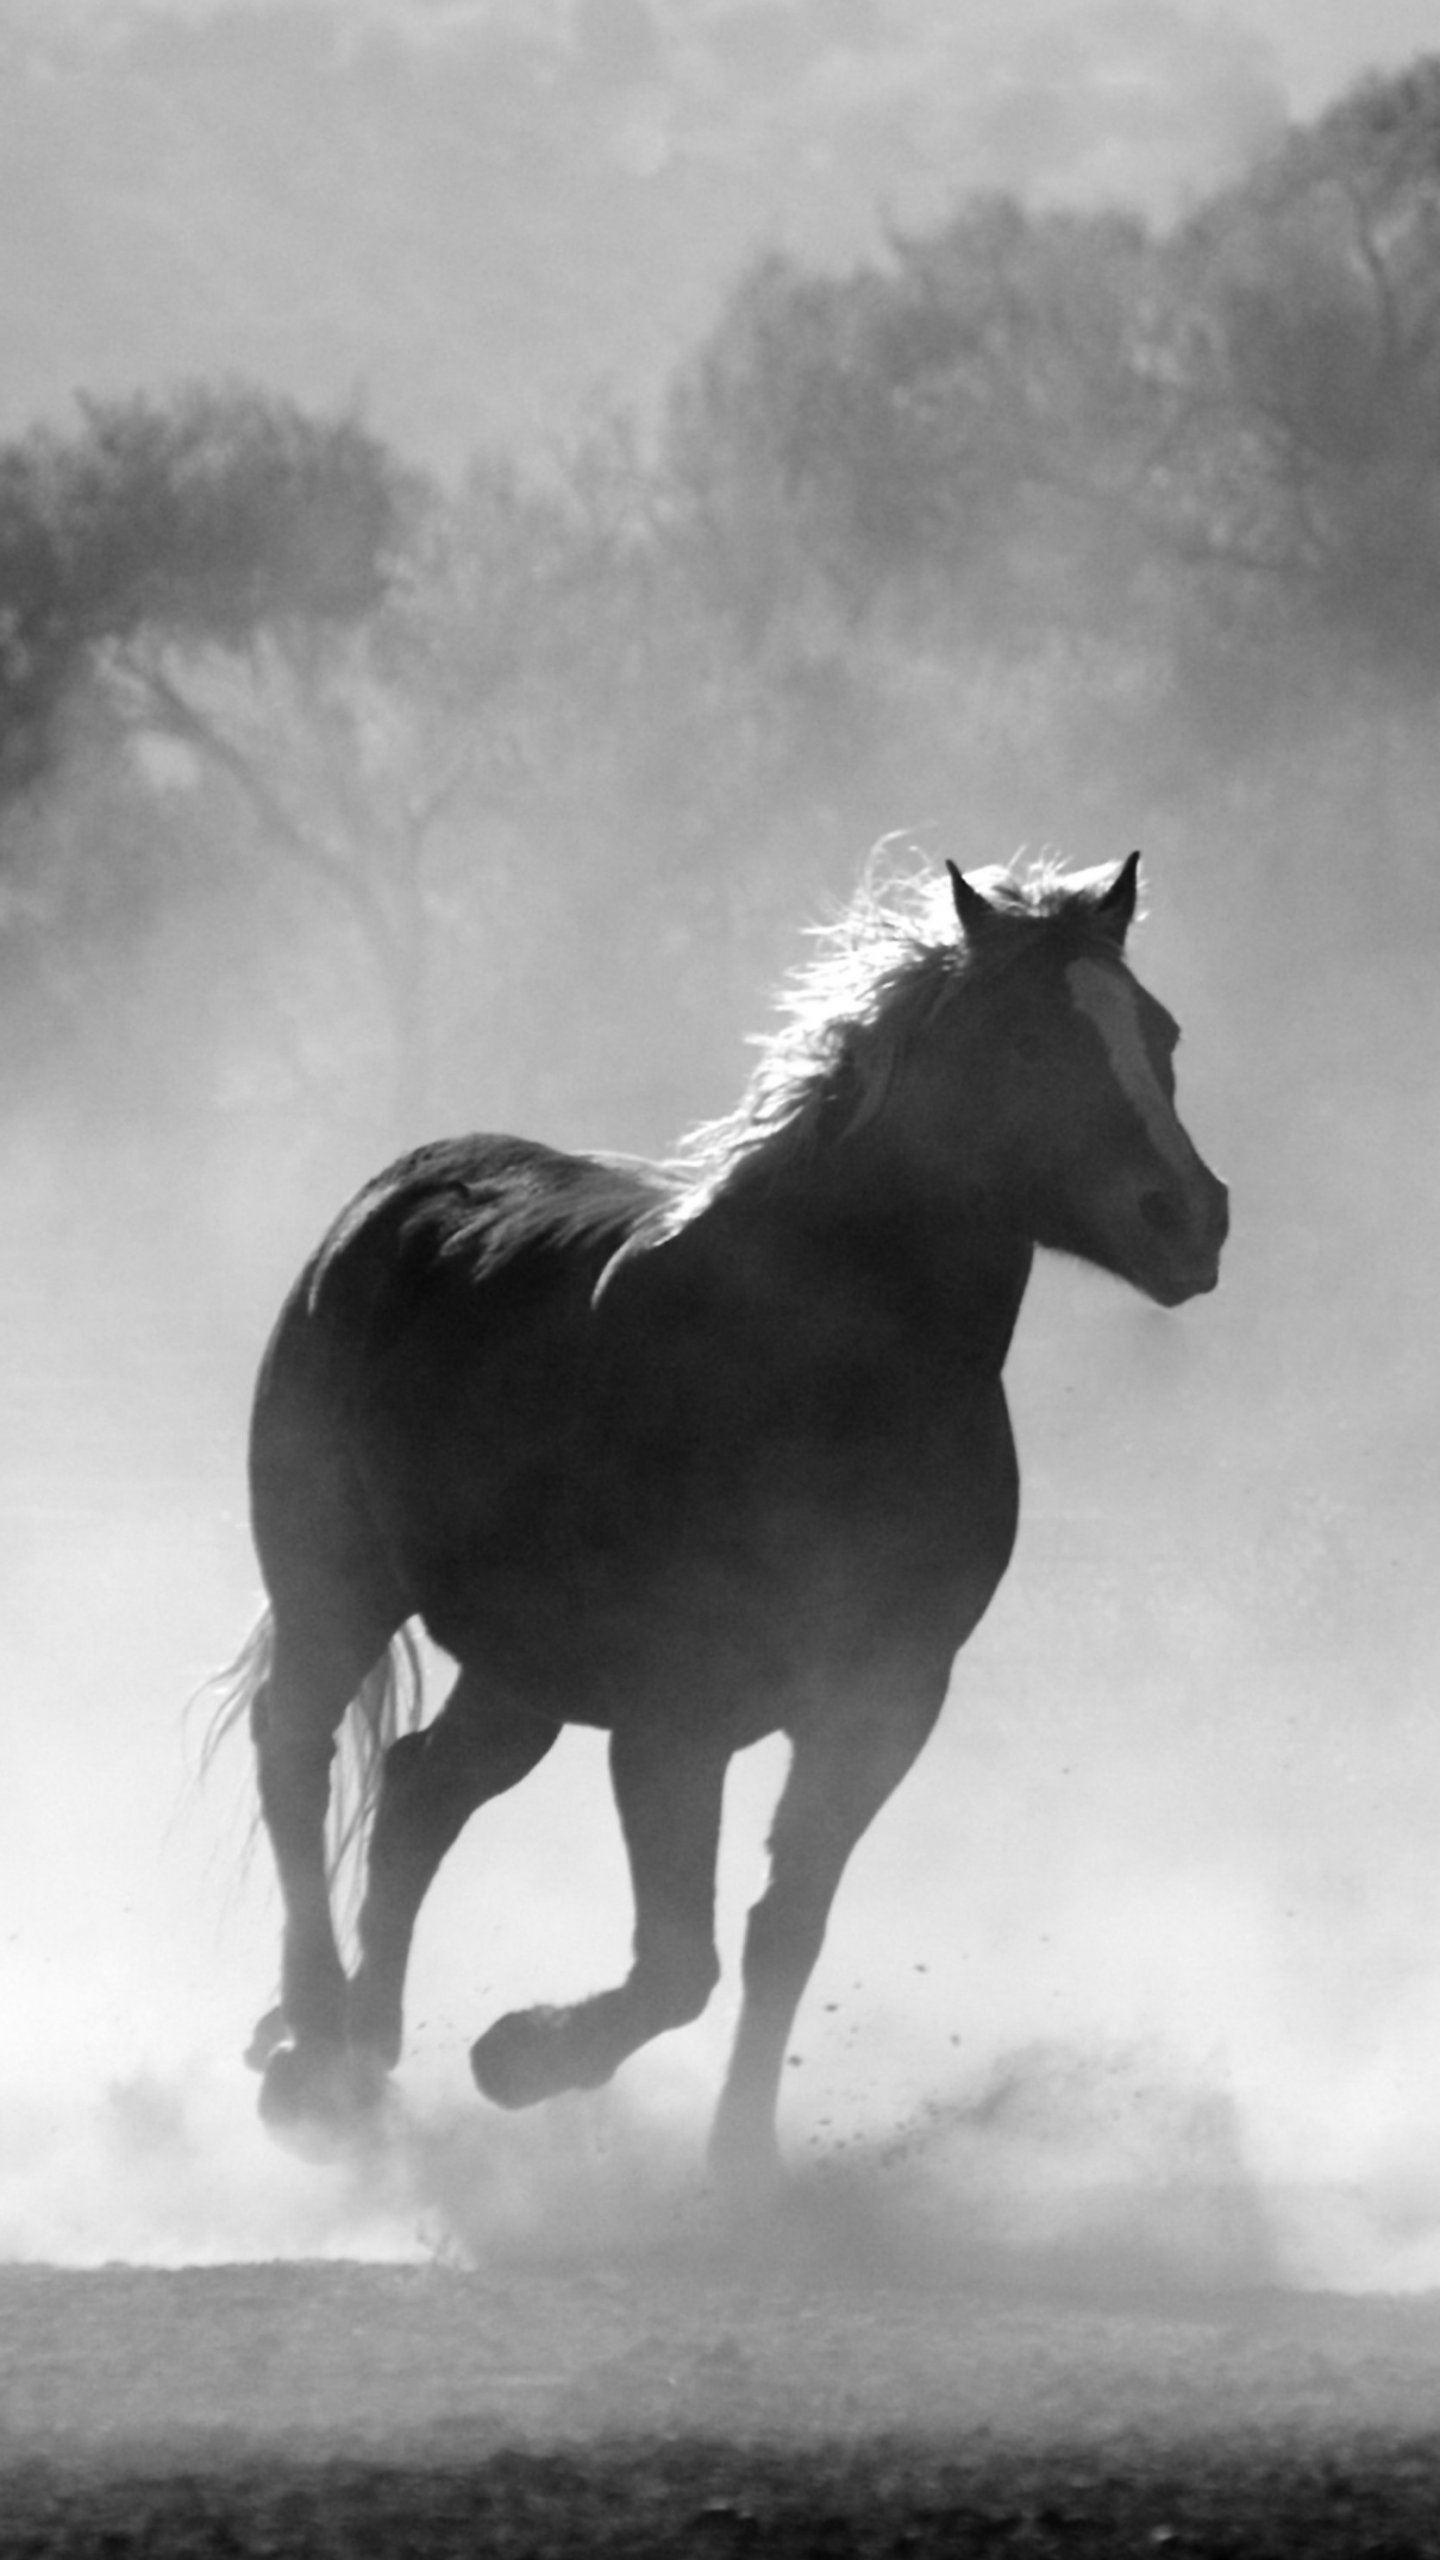 Wallpaper Of Horses Posted By Zoey Walker